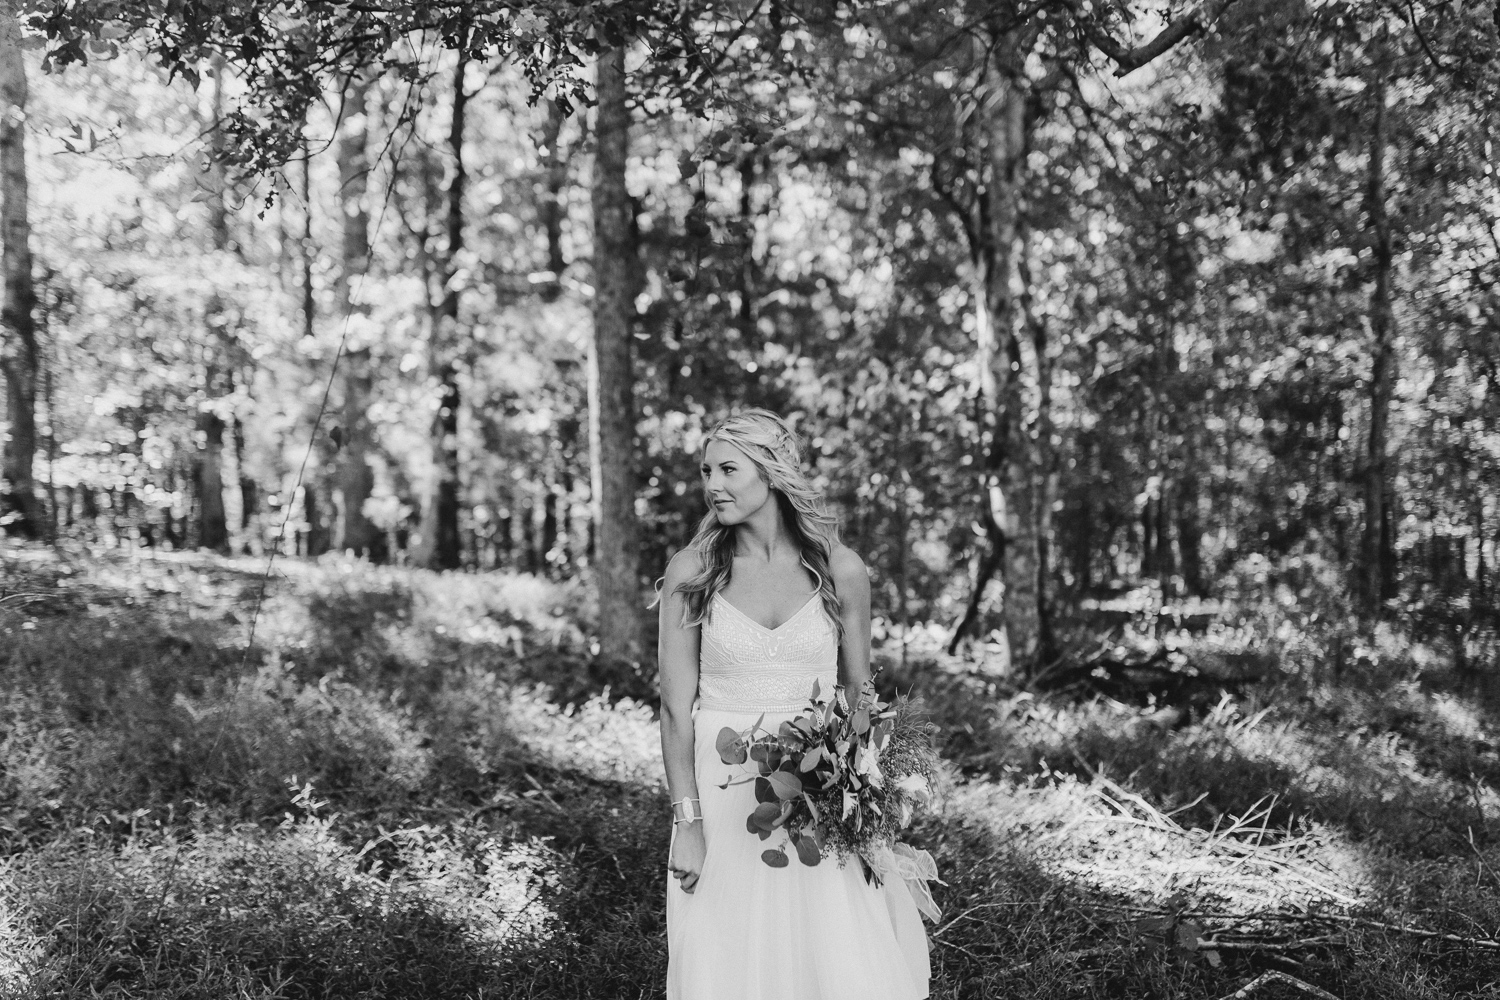 northcarolinaweddingphotographer-22